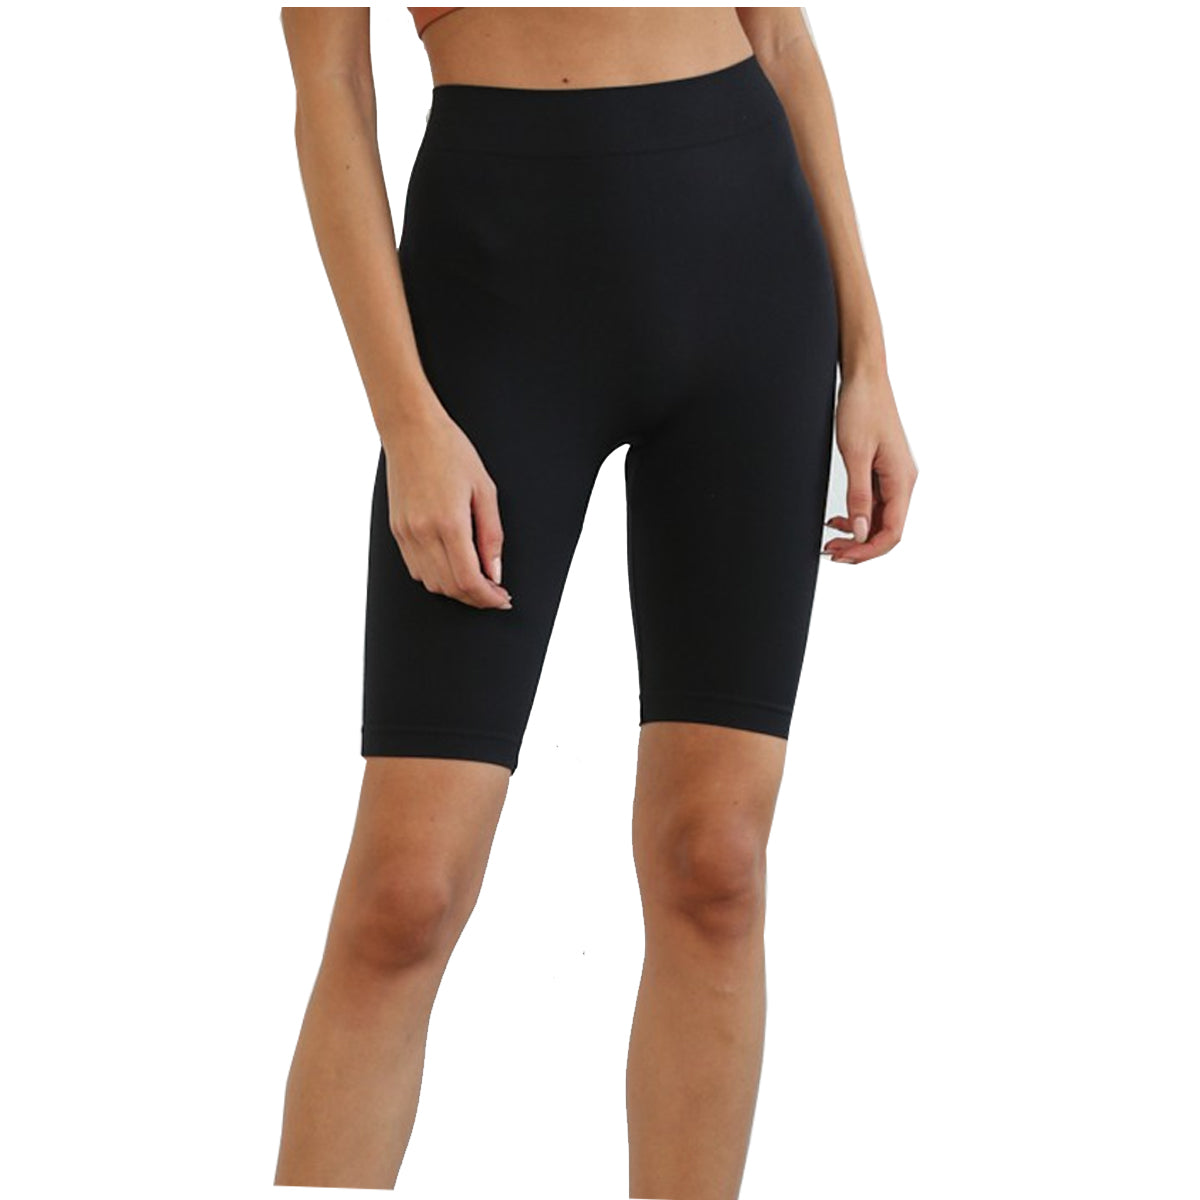 By Together Women's Seamless Above the Knee Biker Shorts - Black